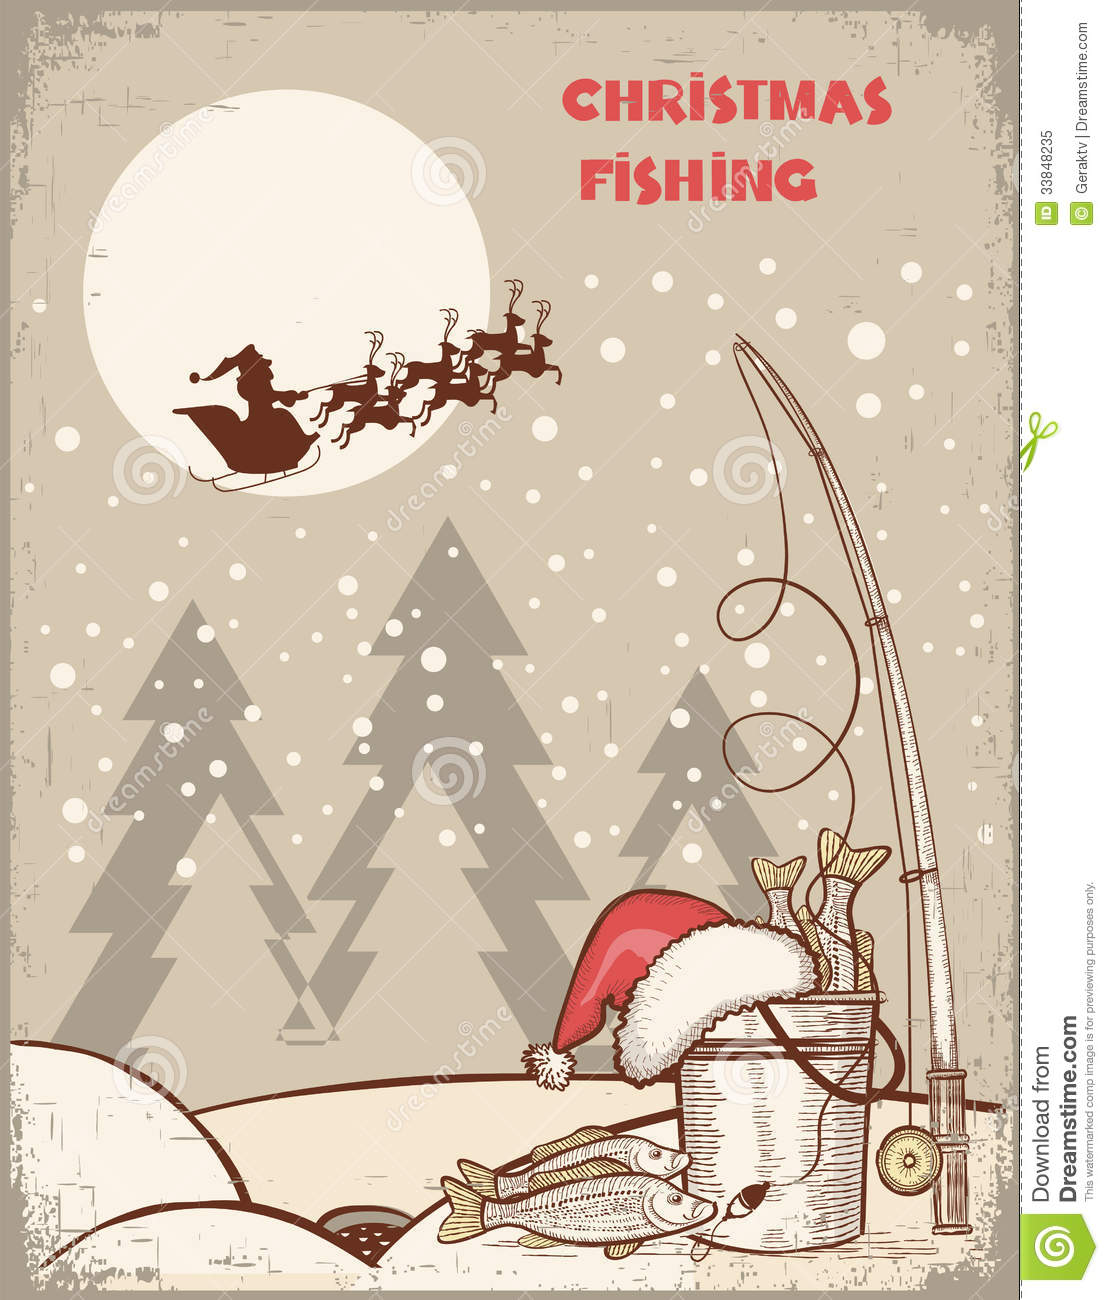 Fishing In Christmas NightVintage Winter Image Wi Royalty